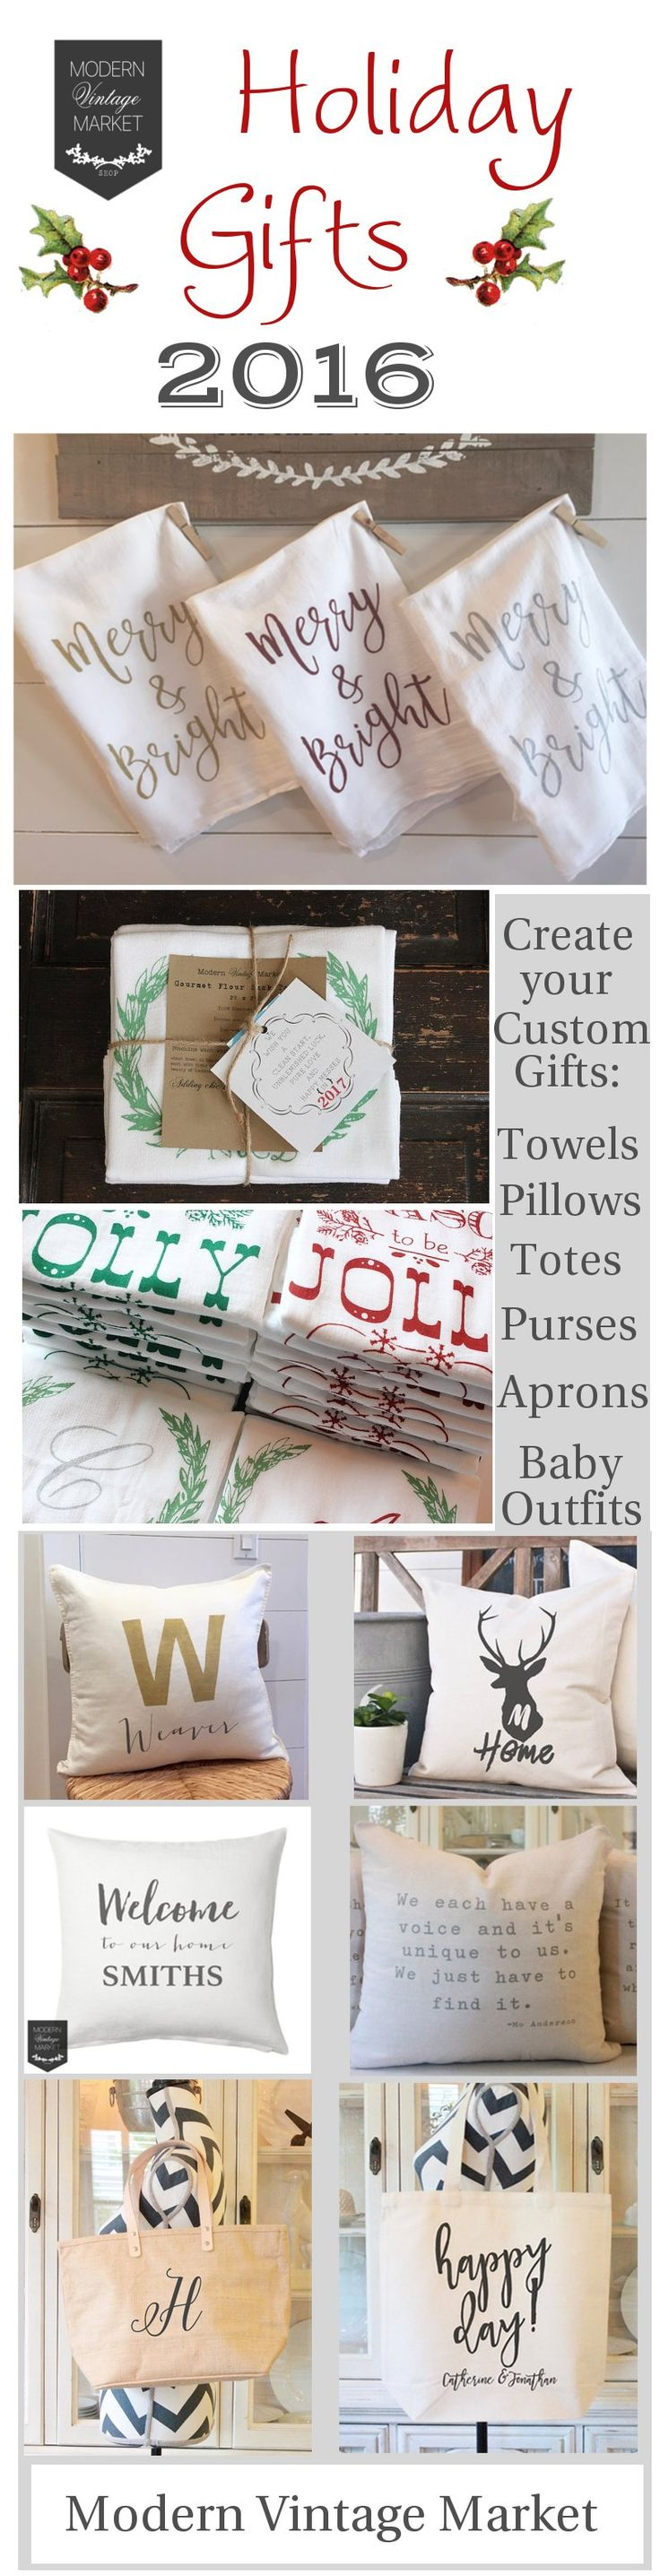 Looking for the prefect gift this holiday? Let us create a personalized gift for you. Have your Grandmothers recipe placed on a kitchen towel, add your favorite quote to a pillow, send a Holiday hand printed flour sack towel. We monogram and customized Pillows, Aprons, Towels, Napkins, Totes, Handbags and Bay Outfits. #modernvintagemarket